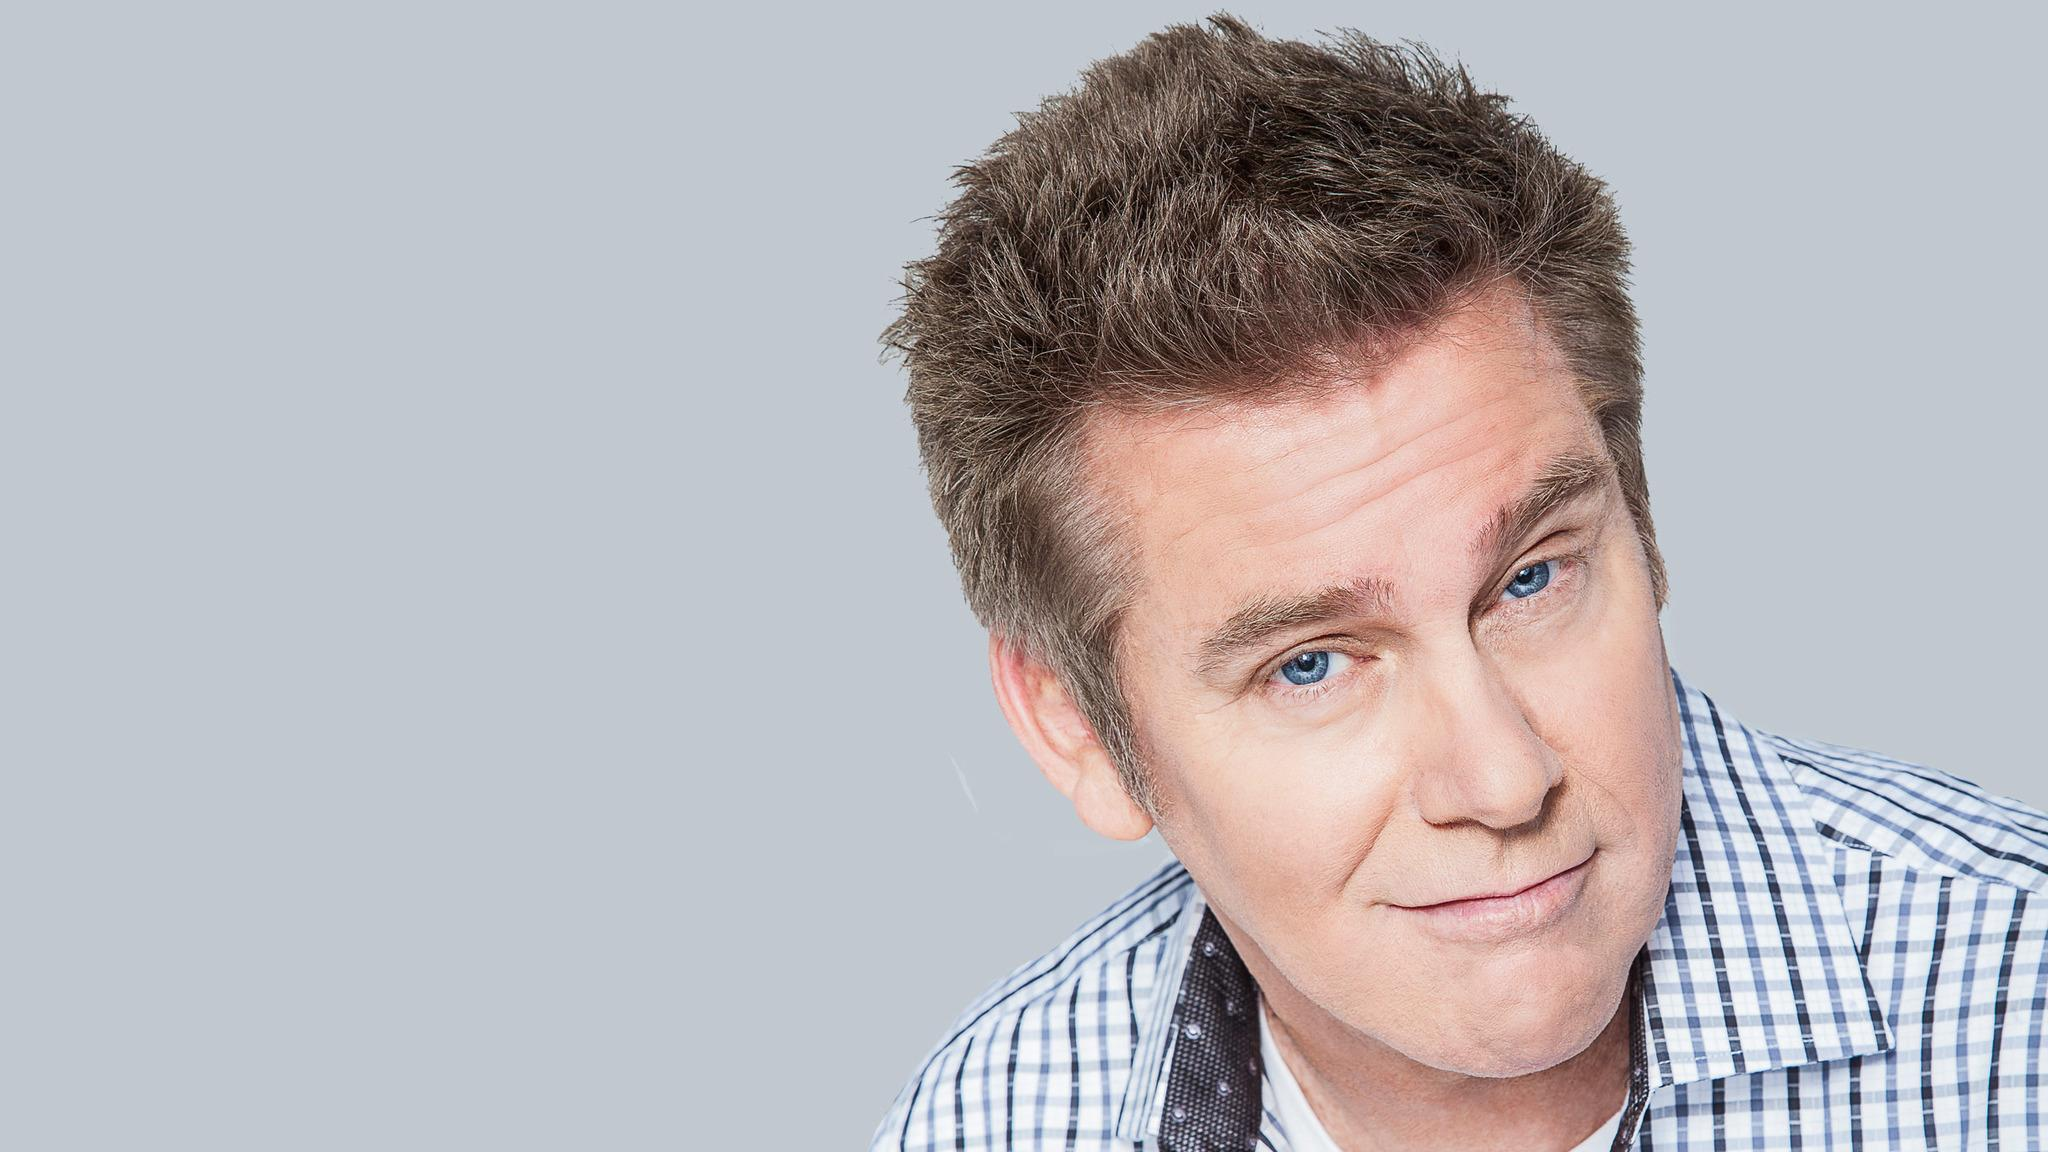 Brian Regan at Orpheum Theatre (Wichita)